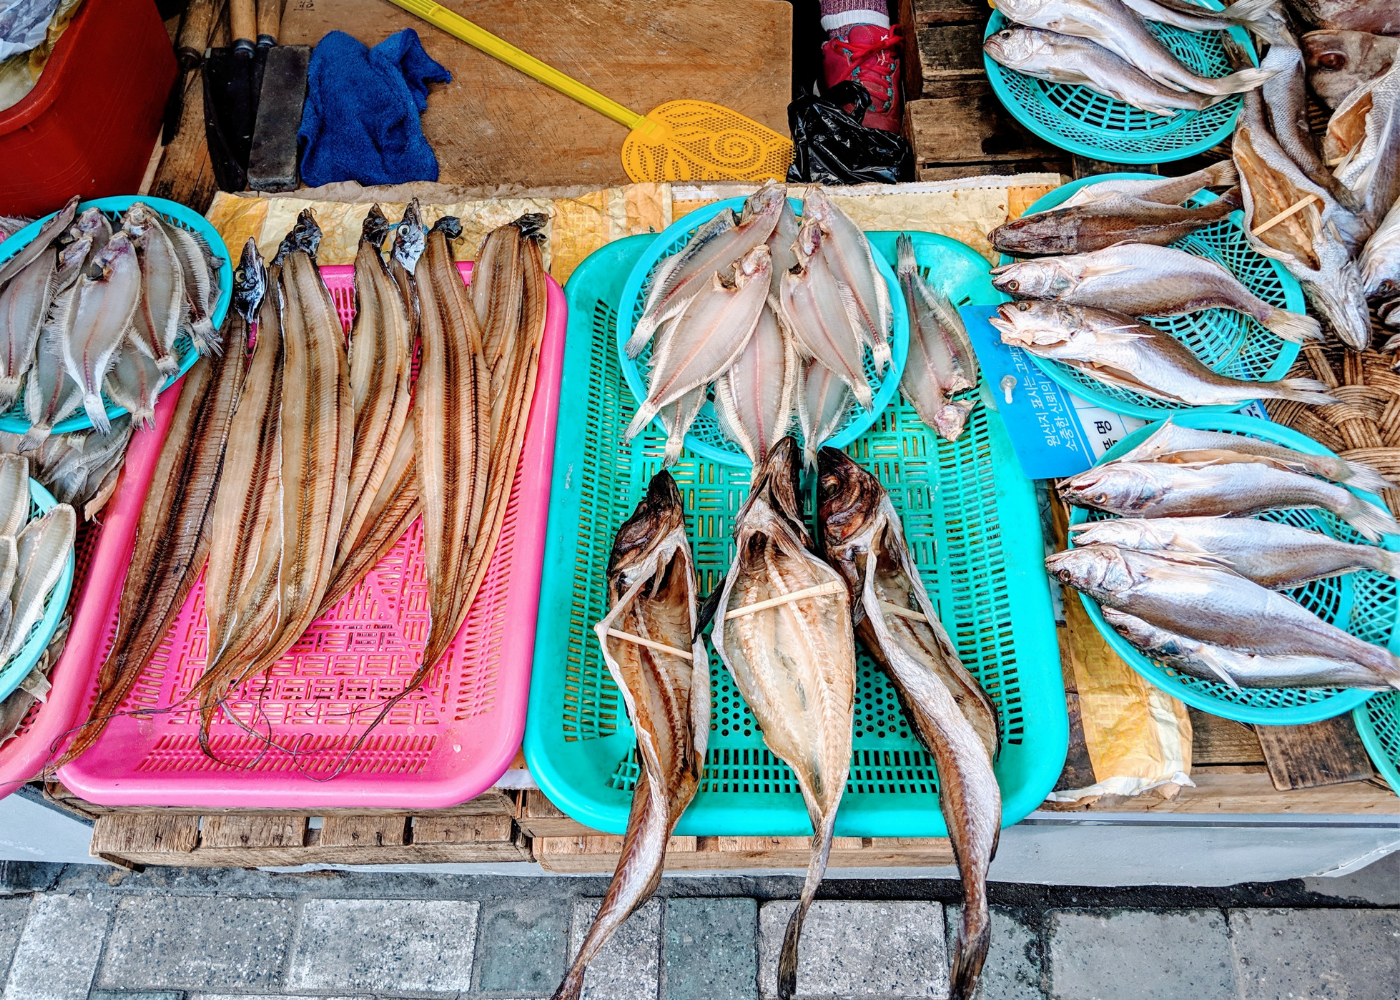 Dried fish, anyone?